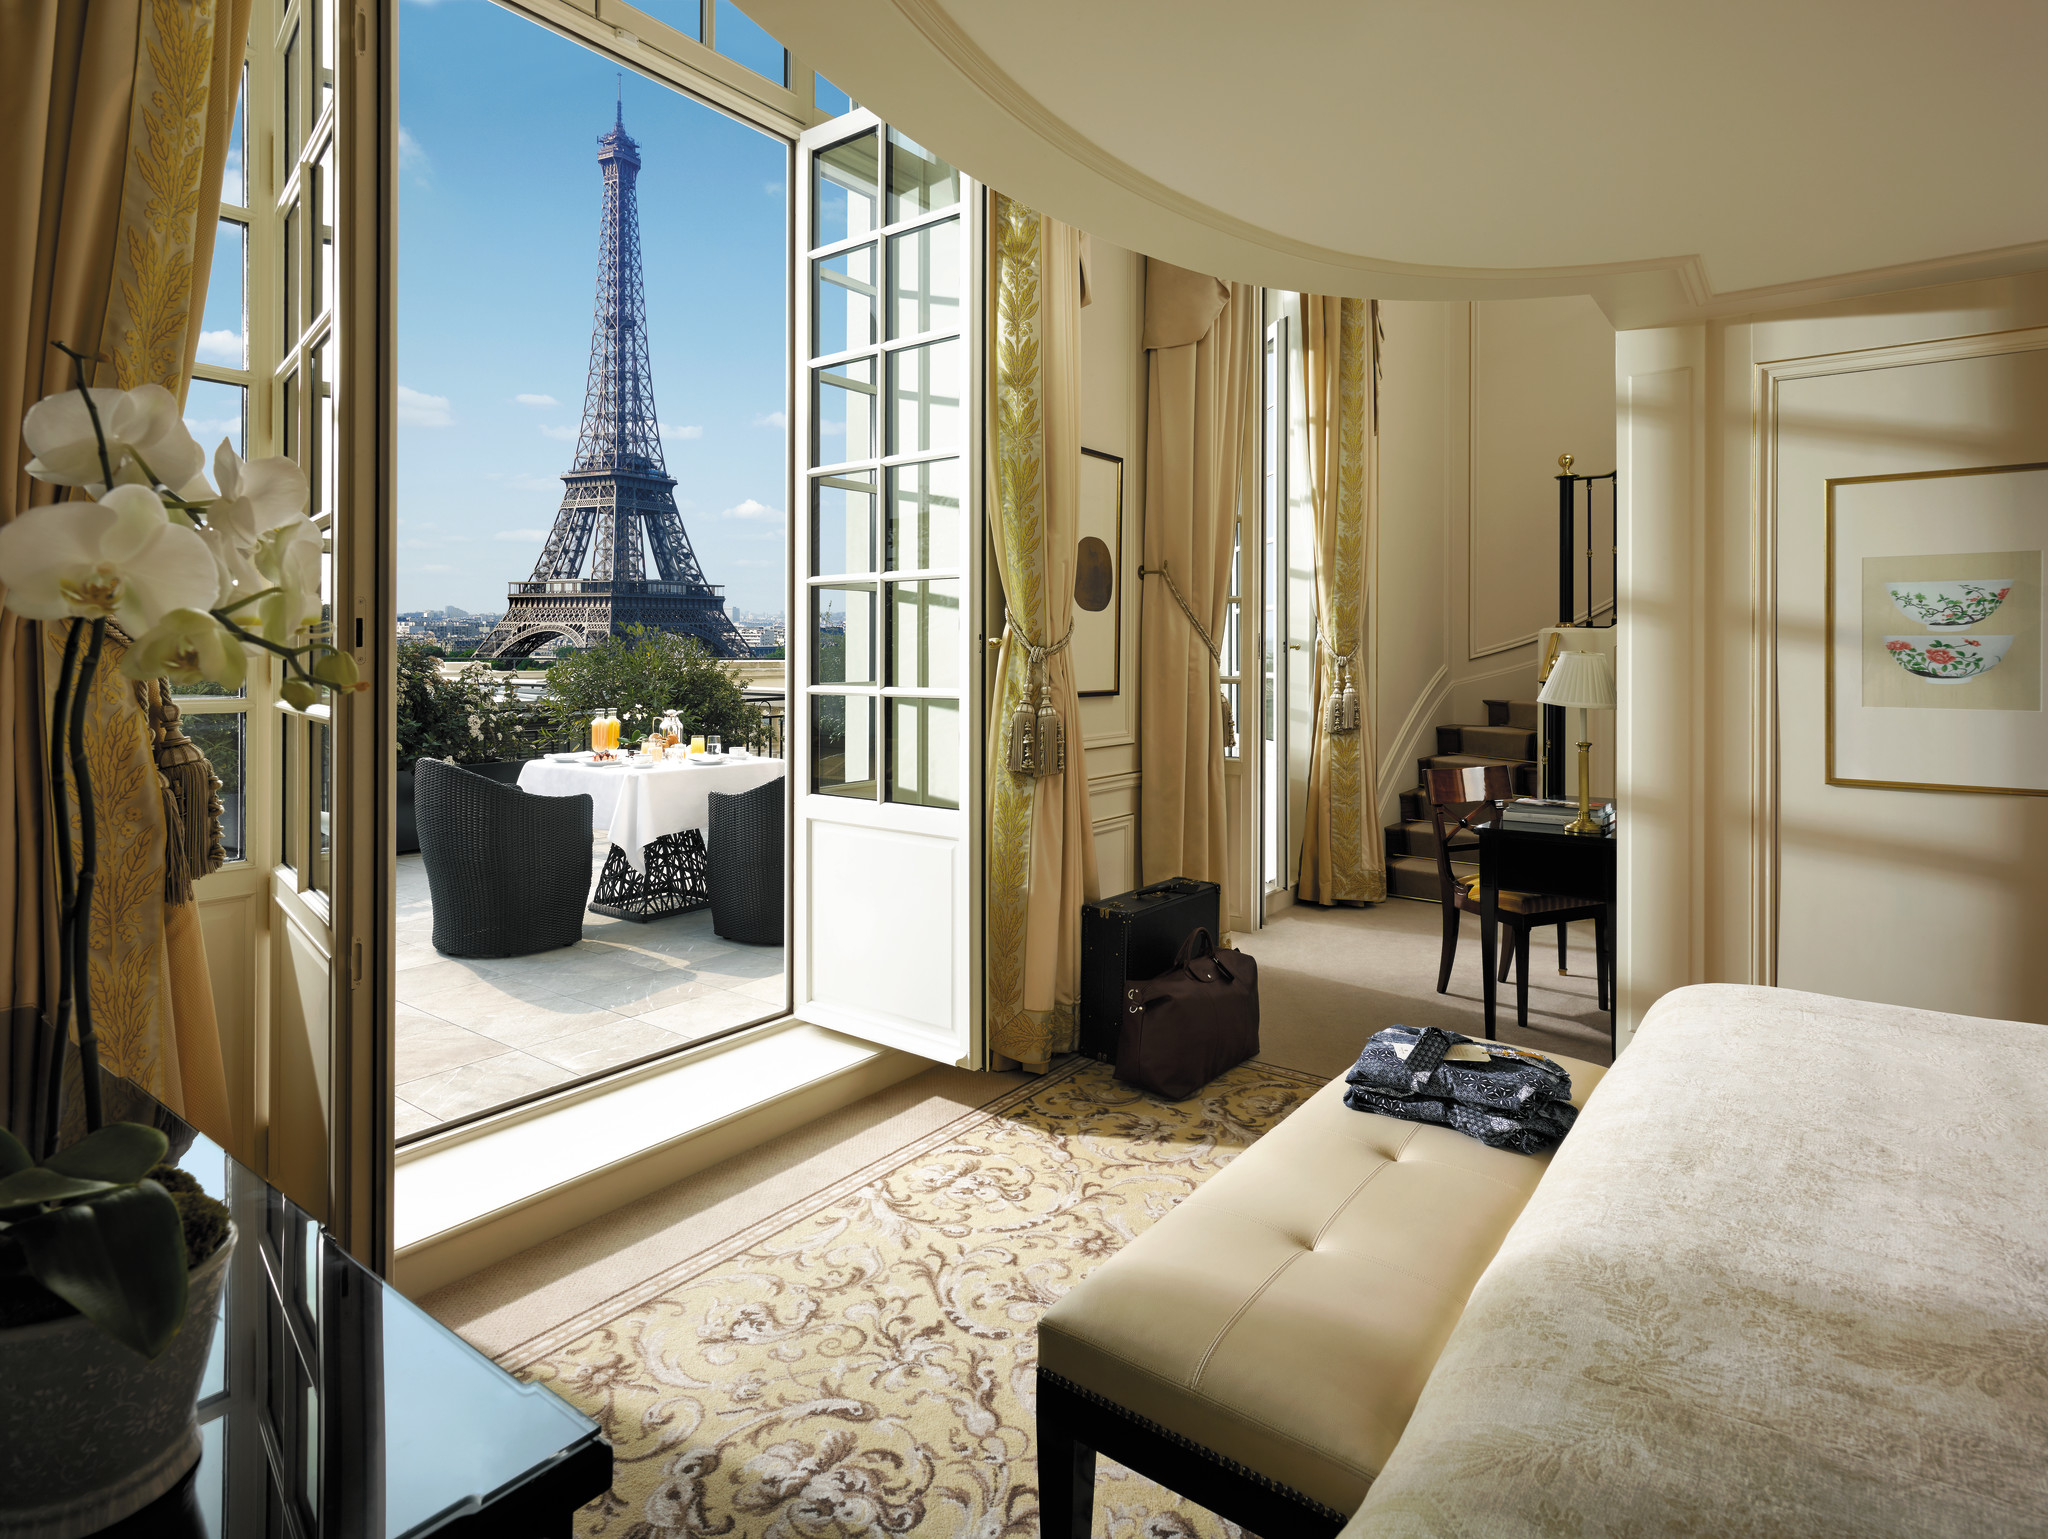 Luxury Travel: 5 Reasons Why Paris Should Be Your Next Destination luxury travel Luxury Travel: 5 Reasons Why Paris Should Be Your Next Destination luxury travel reasons why paris next destination shangri la palace hotel